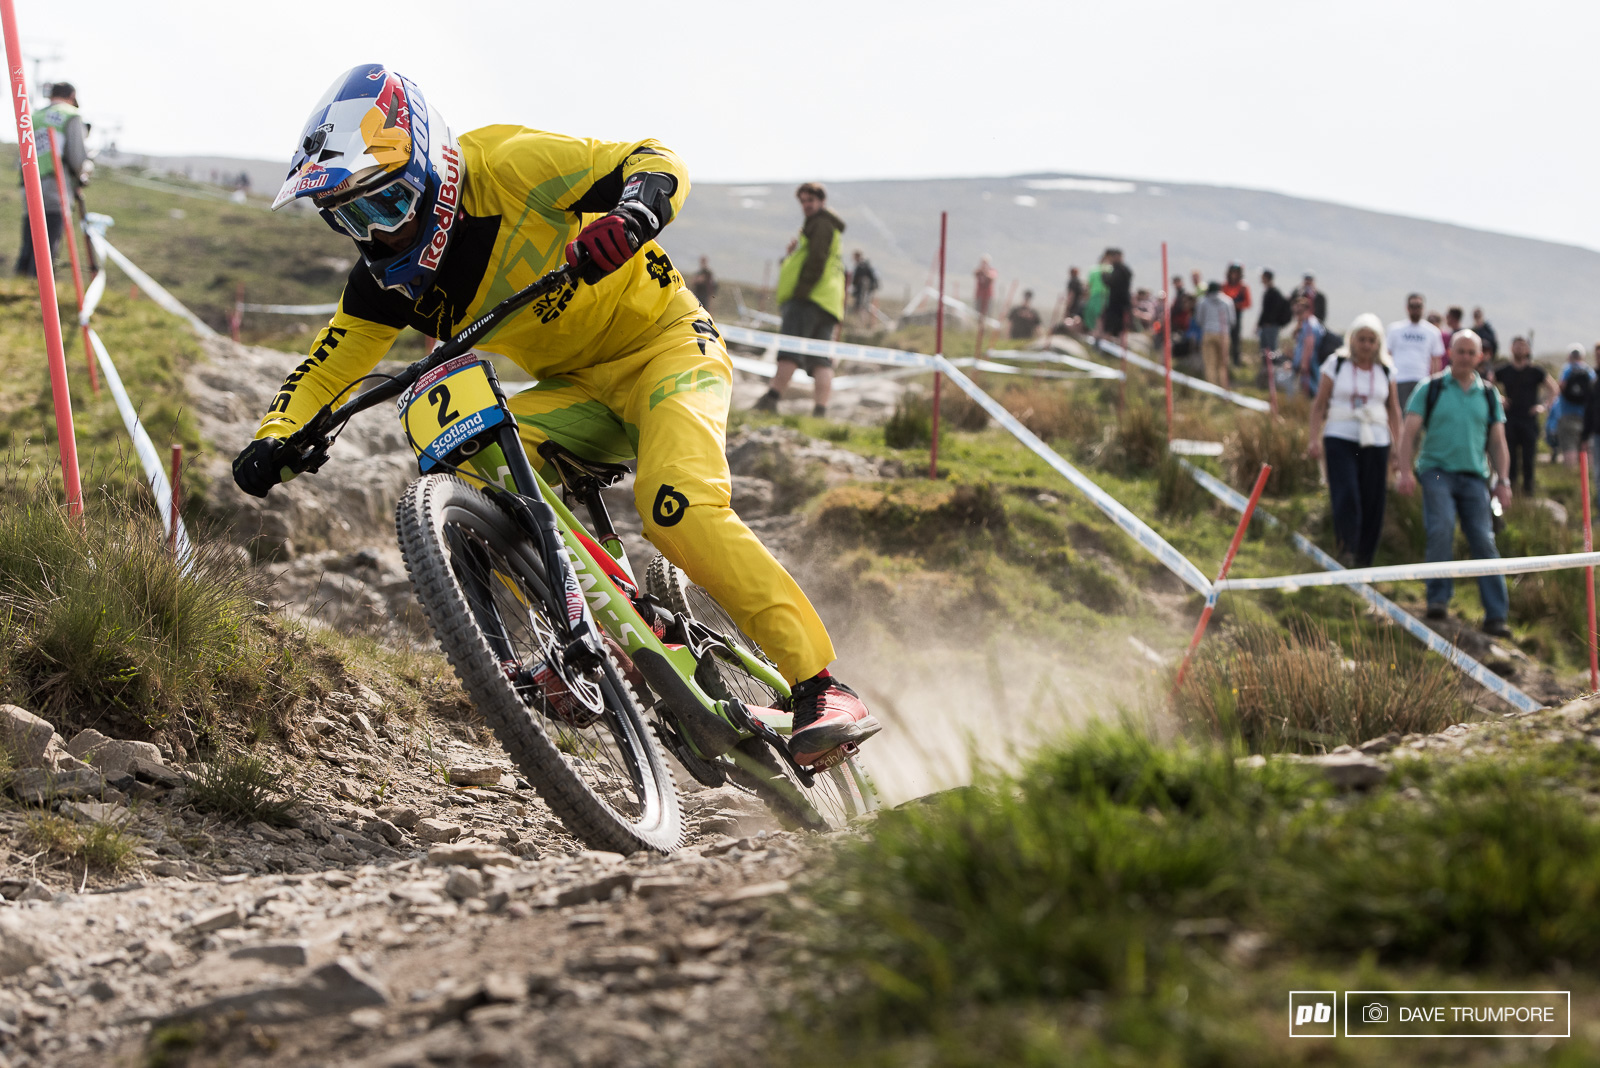 After missing Cairns due to injury Finn Iles backed up his win in Lourdes as the top junior qualifier here in Fort William.